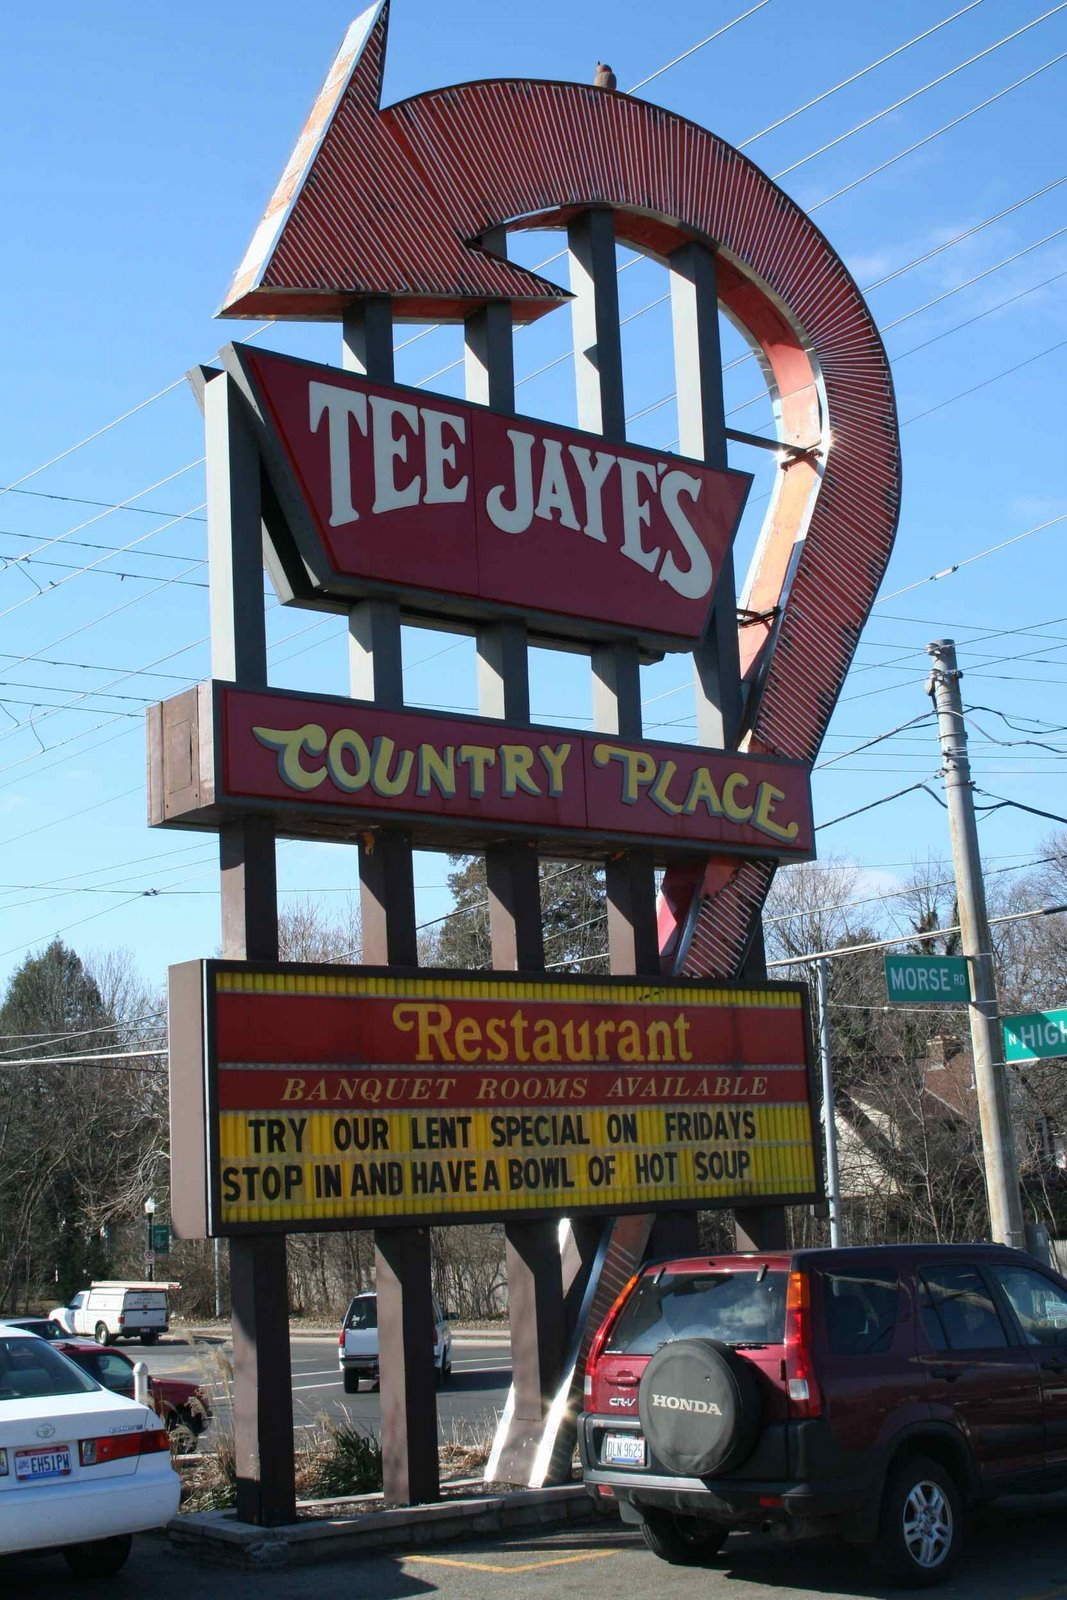 tee jaye 39 s country place columbus oh breakfast with nick. Black Bedroom Furniture Sets. Home Design Ideas